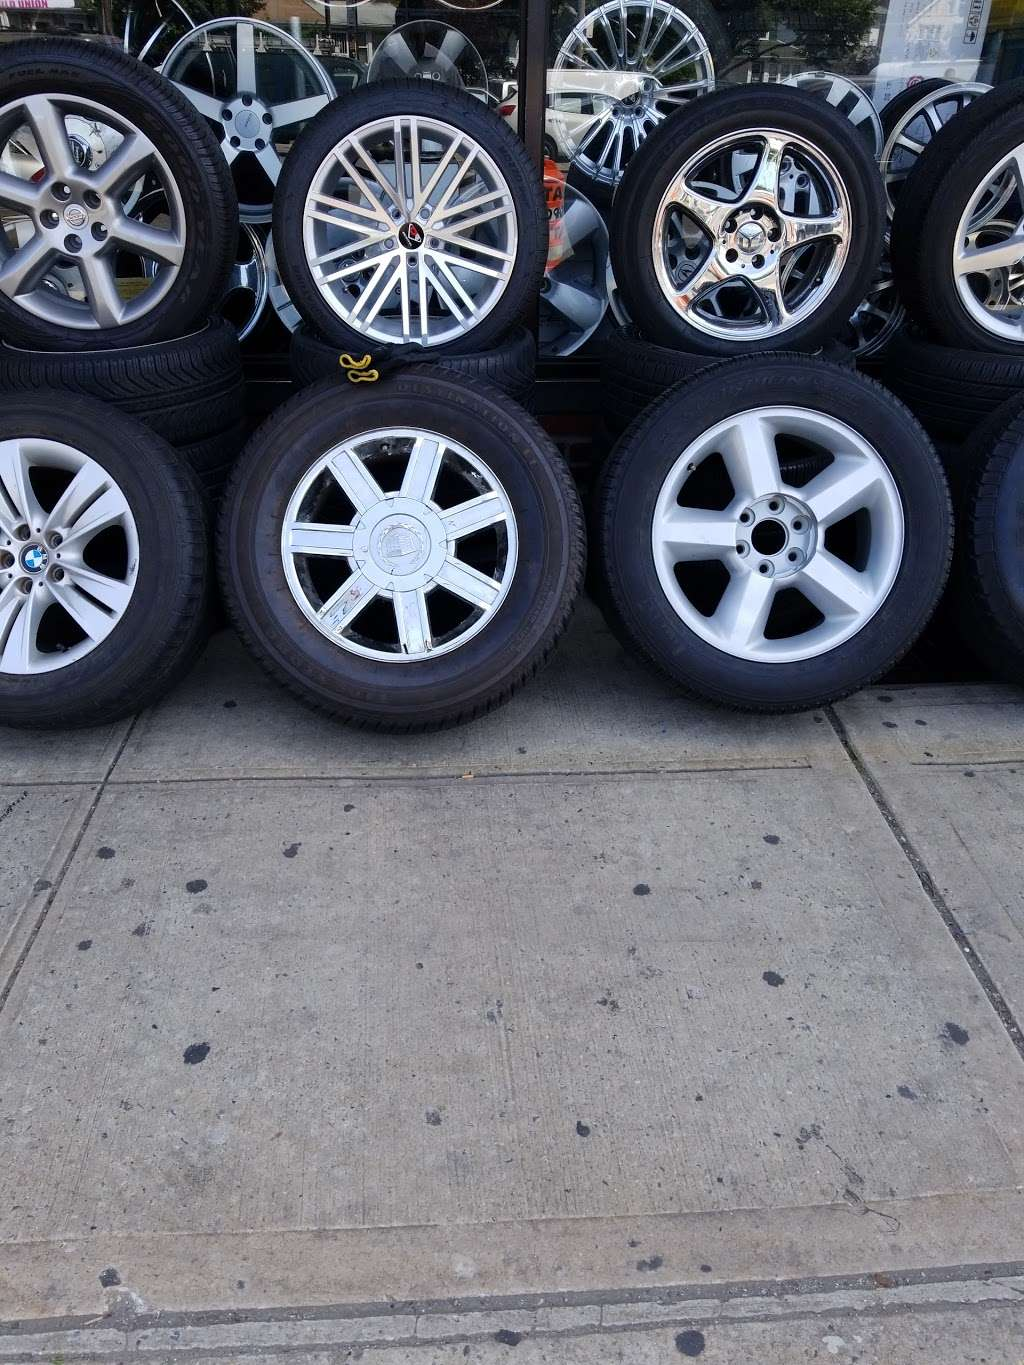 One Stop Tire Shop - car repair  | Photo 4 of 10 | Address: 1707 Flatbush Ave, Brooklyn, NY 11210, USA | Phone: (718) 253-6653